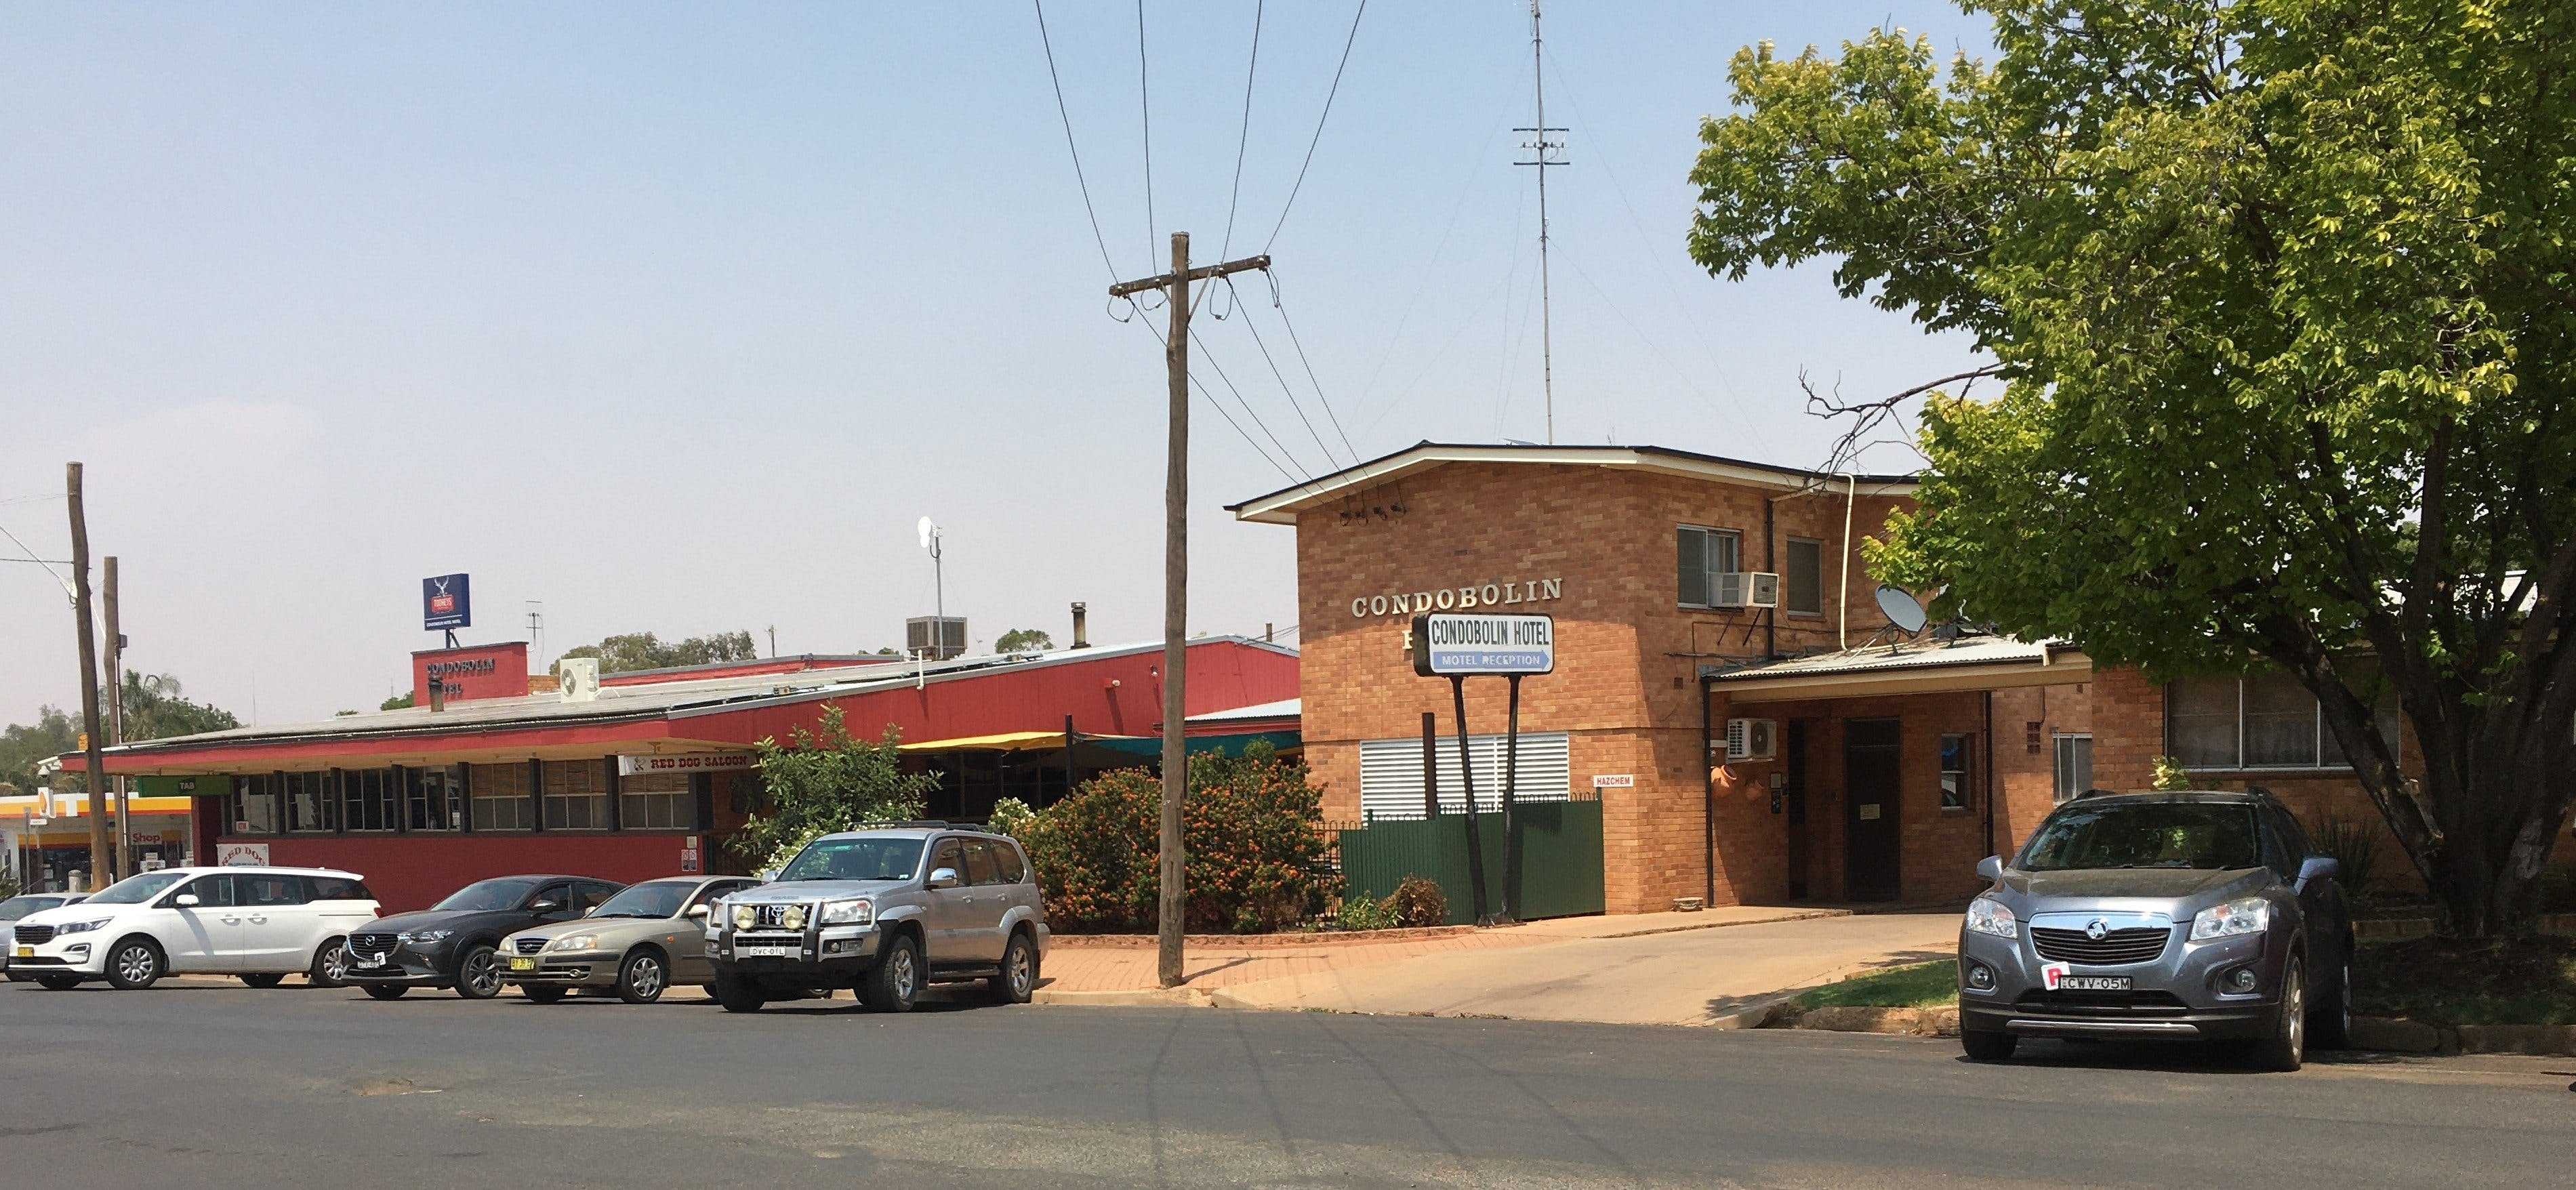 The Condobolin Hotel - Redcliffe Tourism